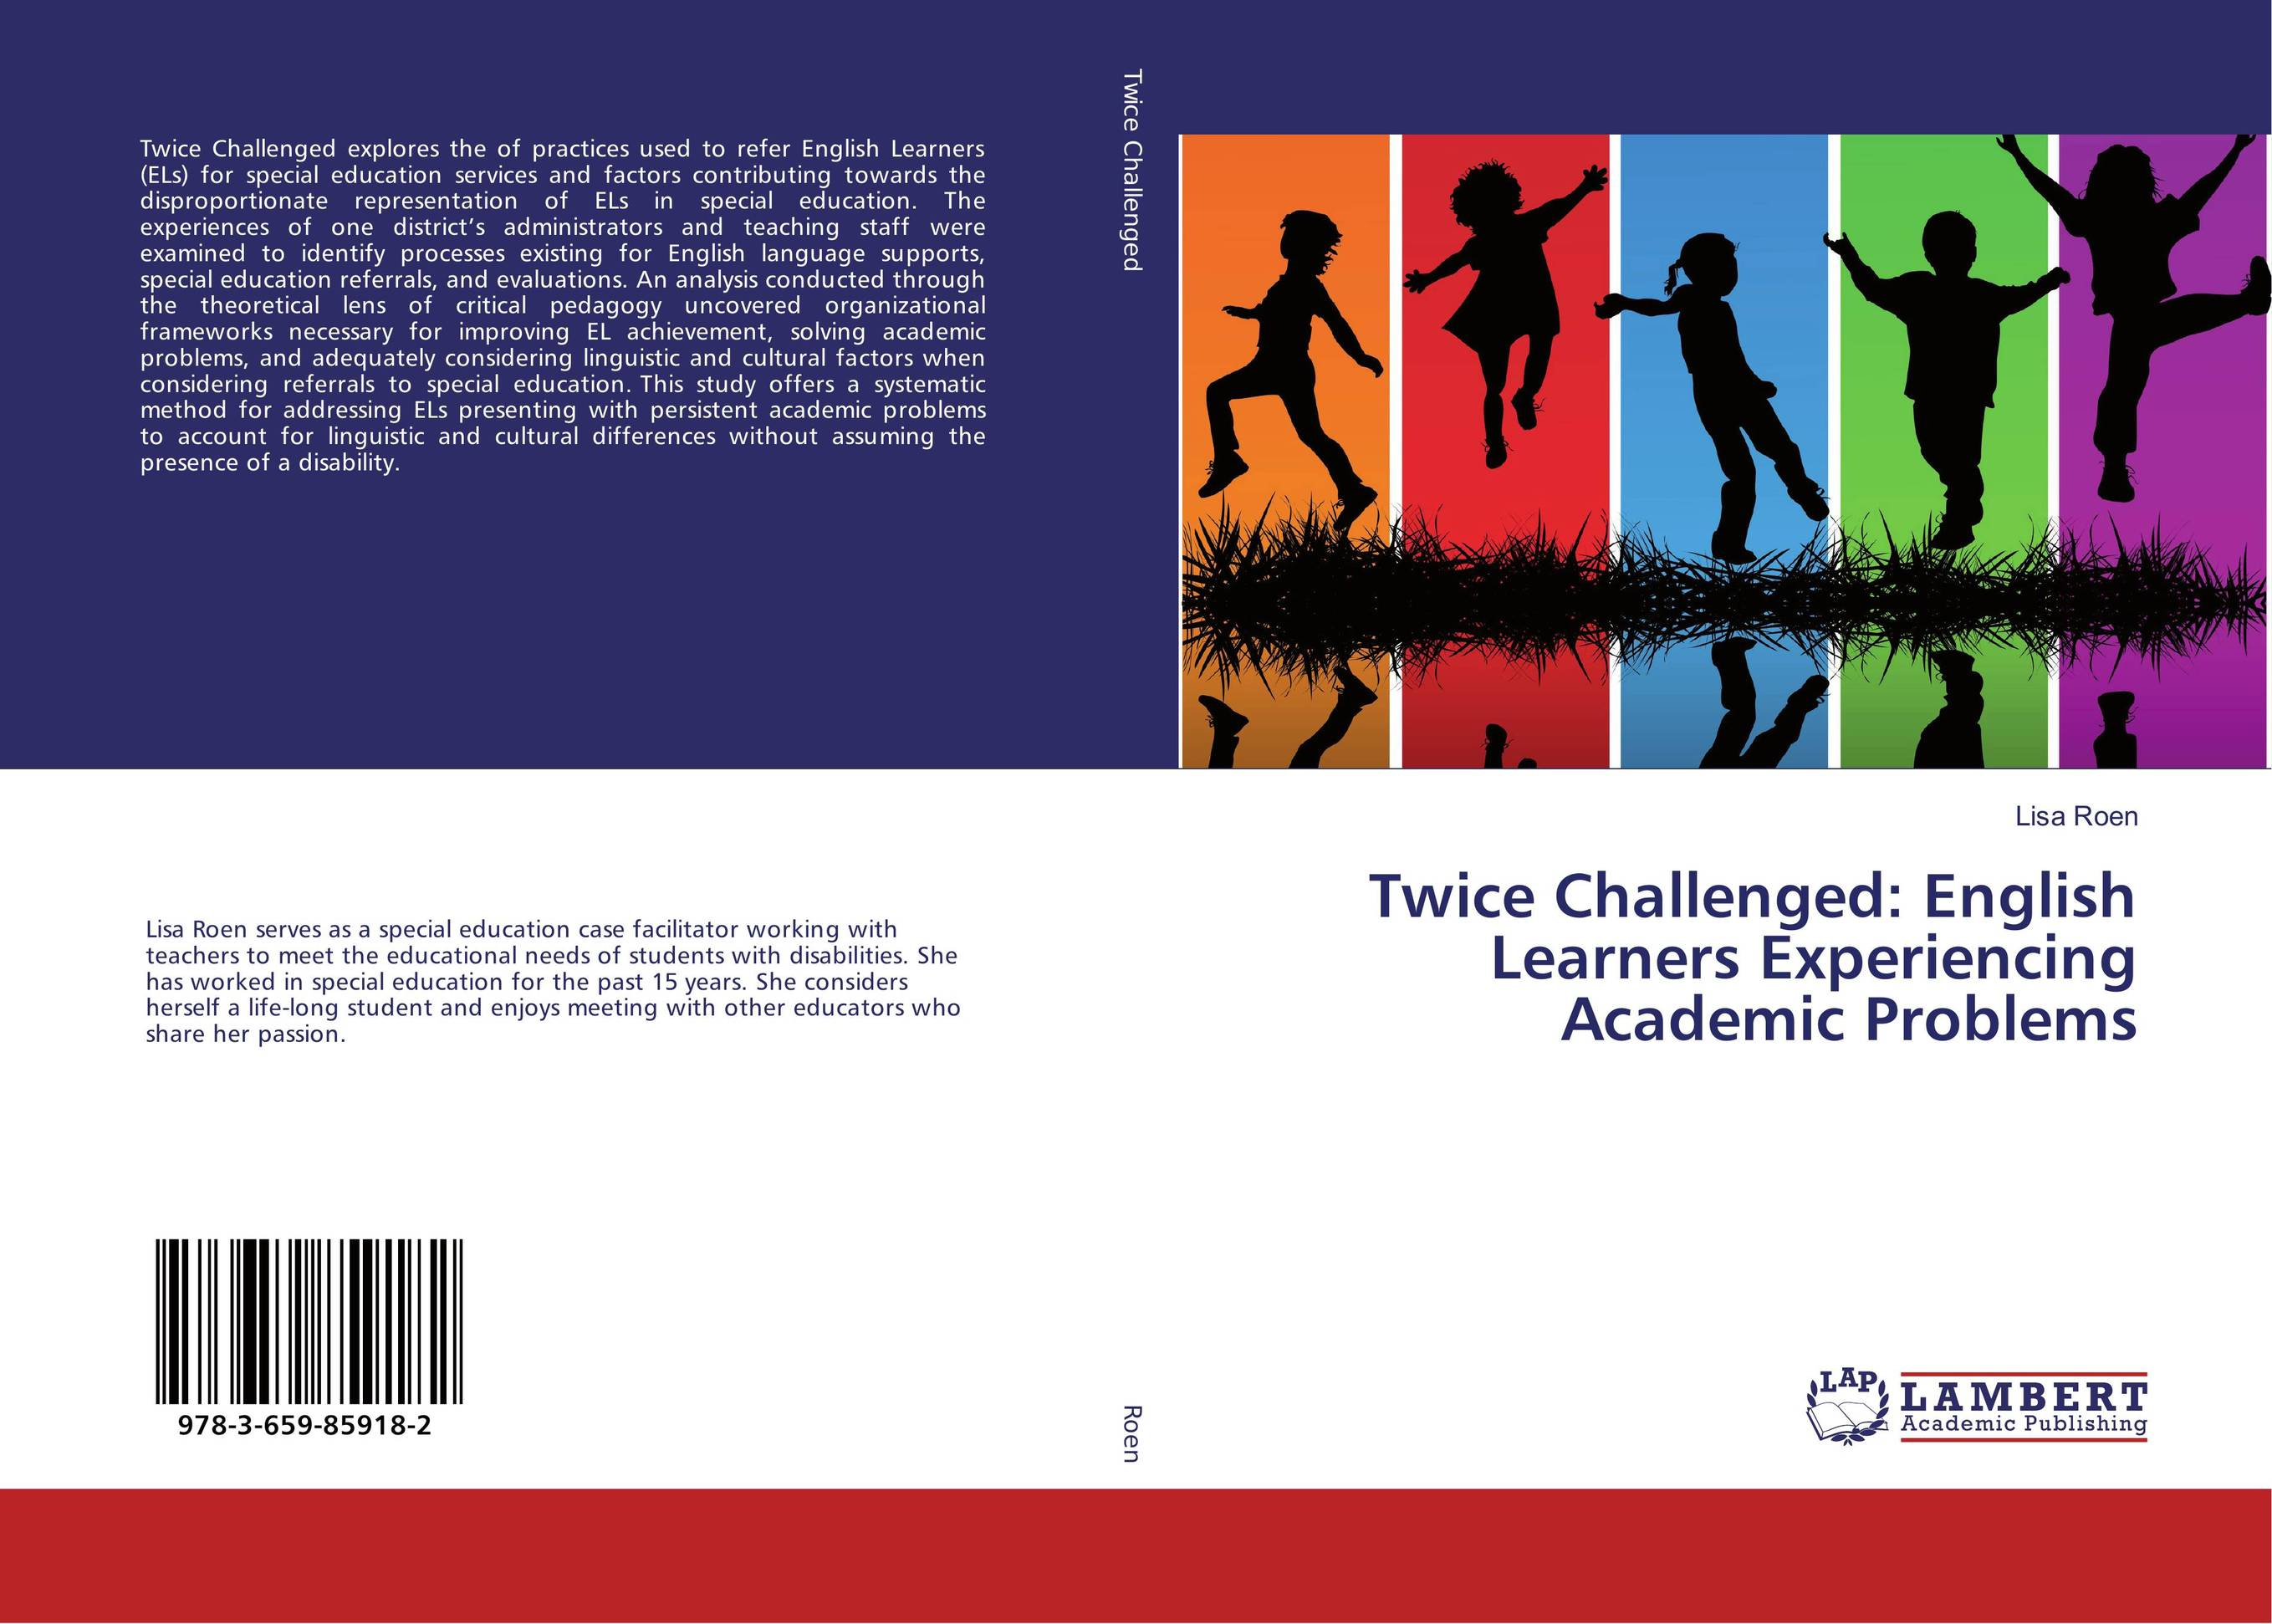 Twice Challenged: English Learners Experiencing Academic Problems introduction to special education